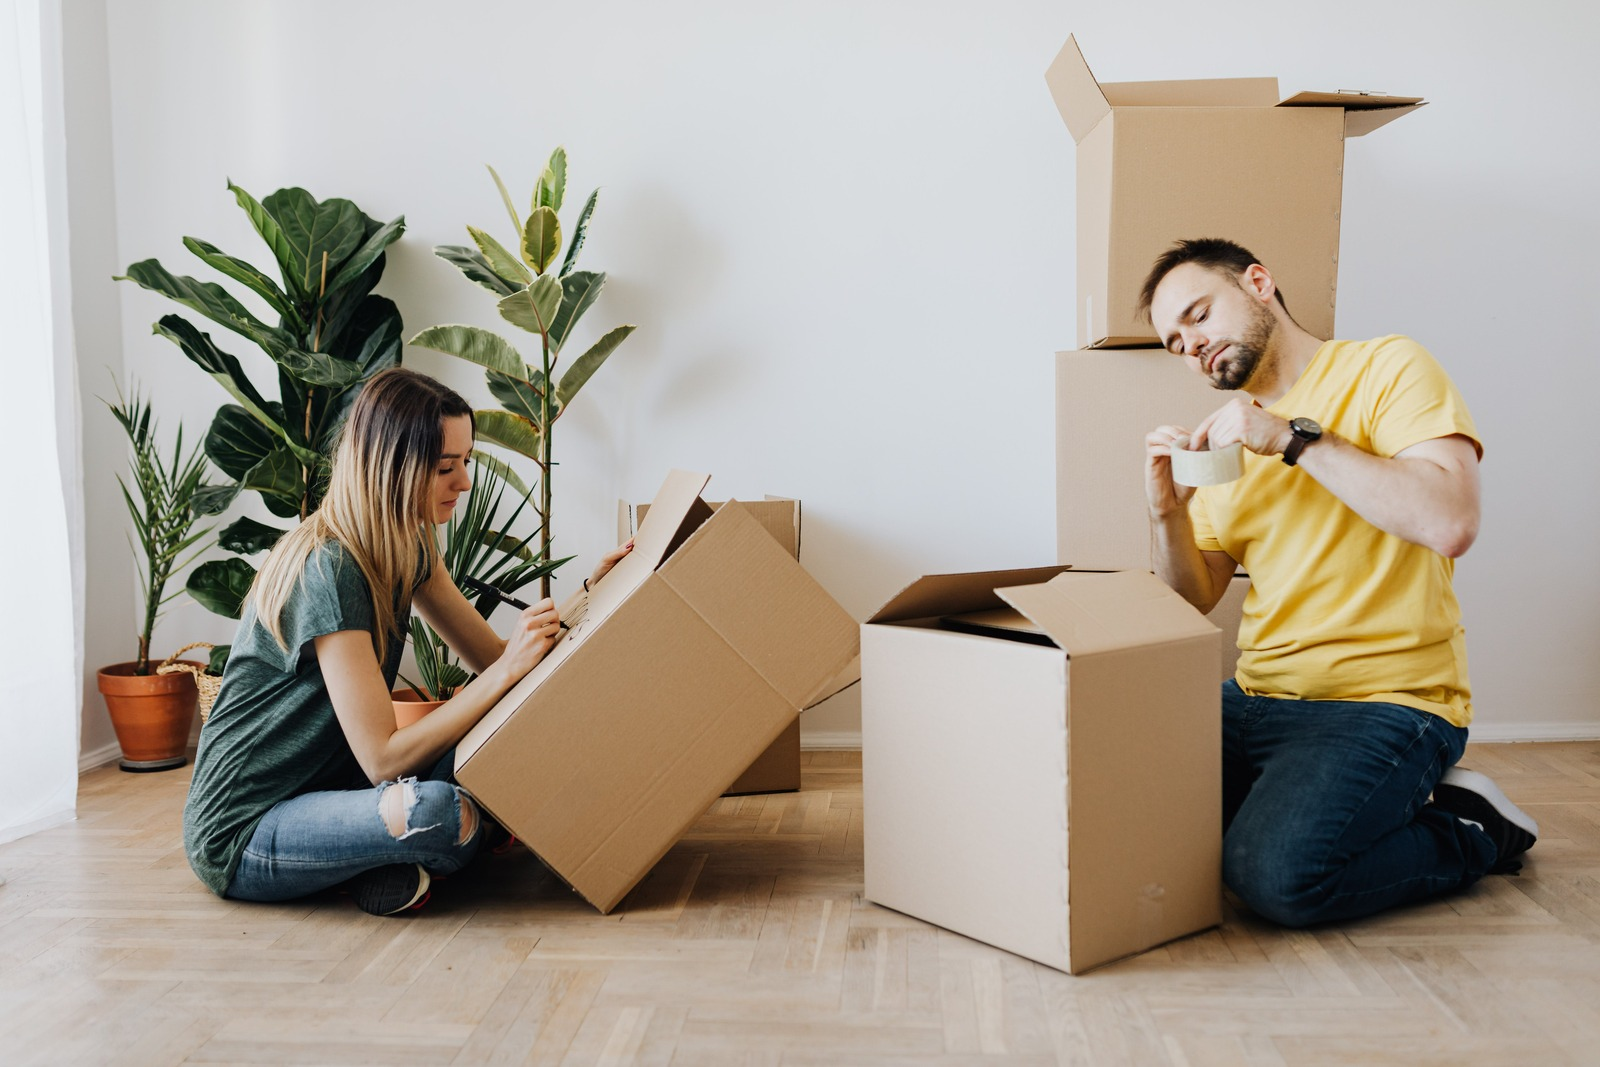 Primary Crucial Advantages Of Having Meeting With Best Packers And Movers Mahadevapura And packers and movers Yeshwanthpur besides. - Blog View - Latinos del Mundo